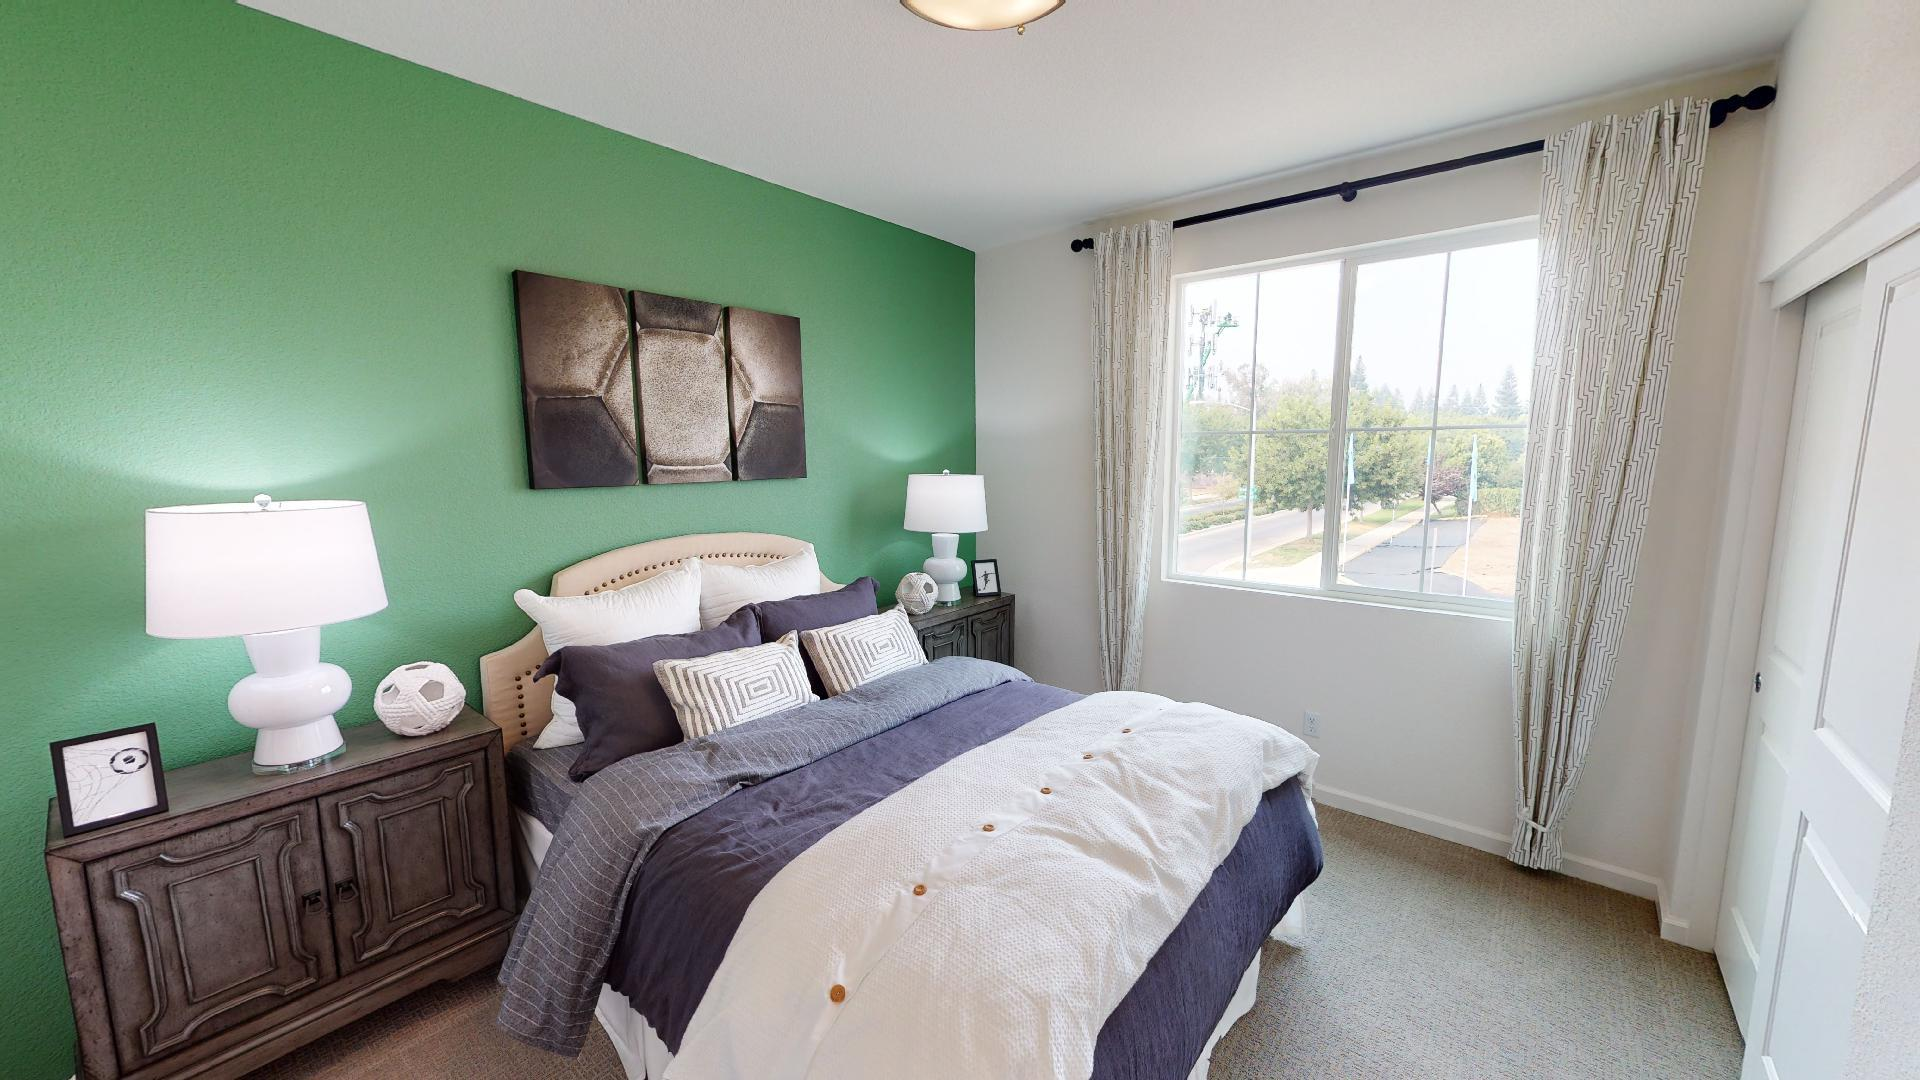 Bedroom featured in the Residence Three By Bright Homes in Merced, CA